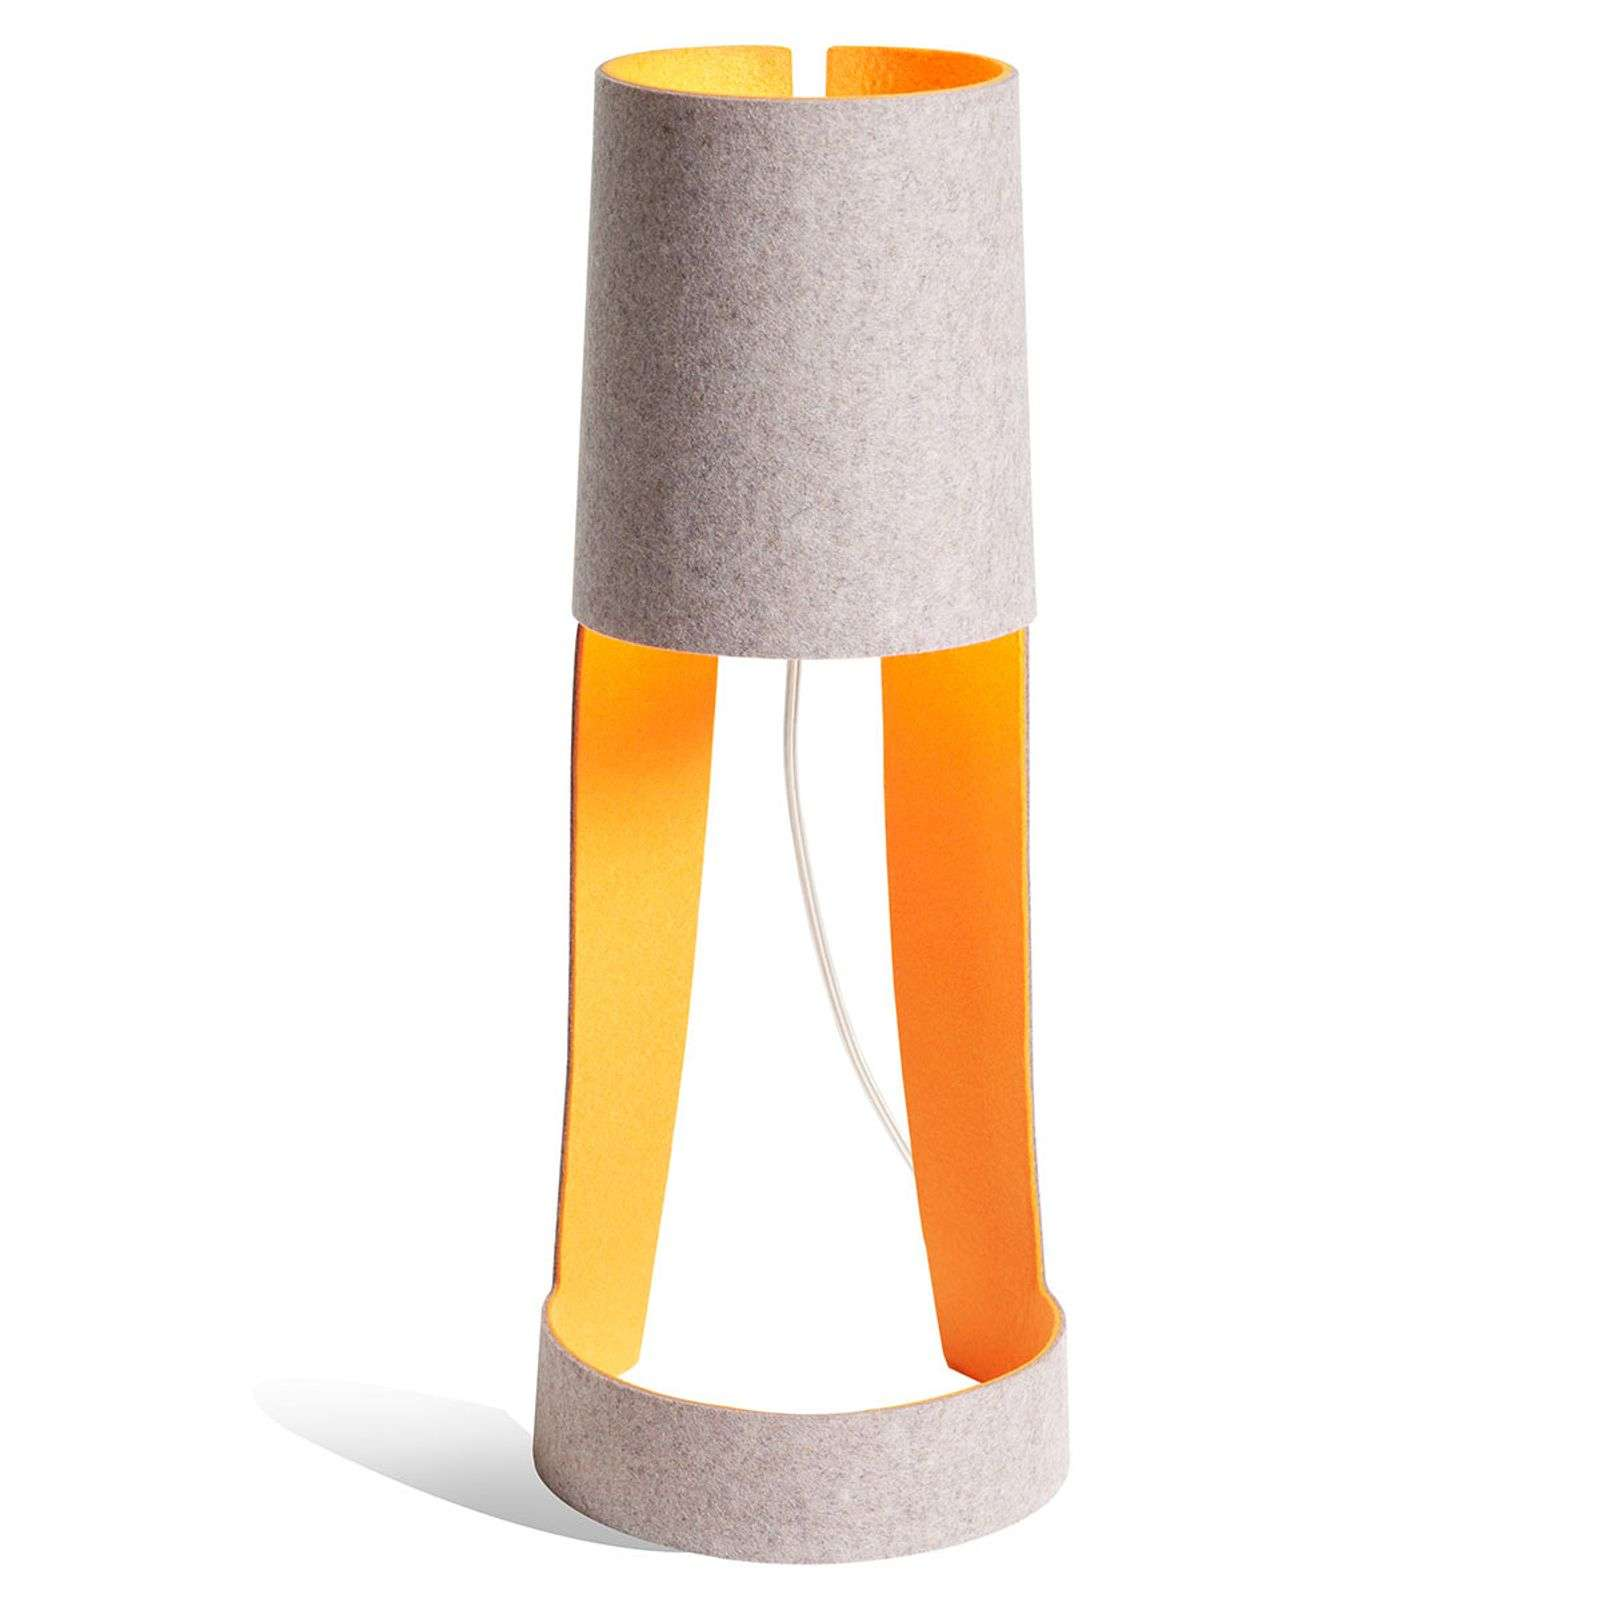 Lampe à poser Mia gris et orange